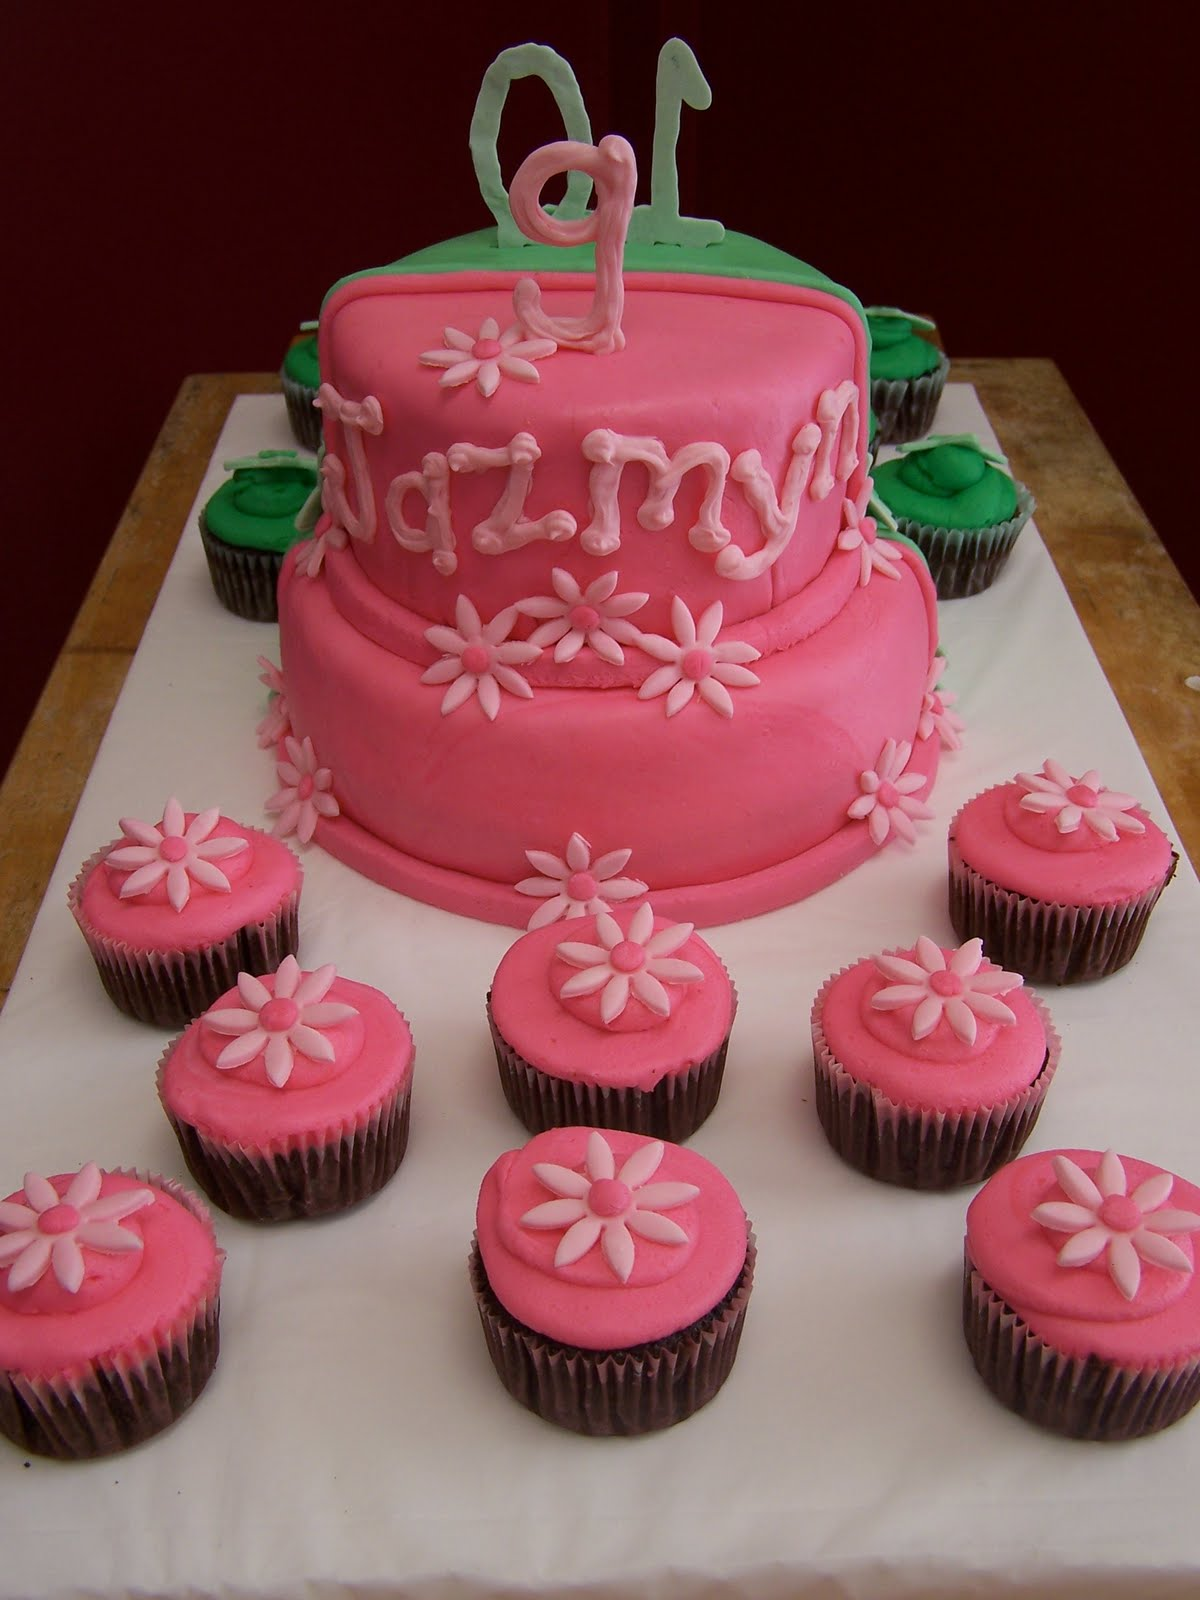 Julie Daly Cakes: 2010